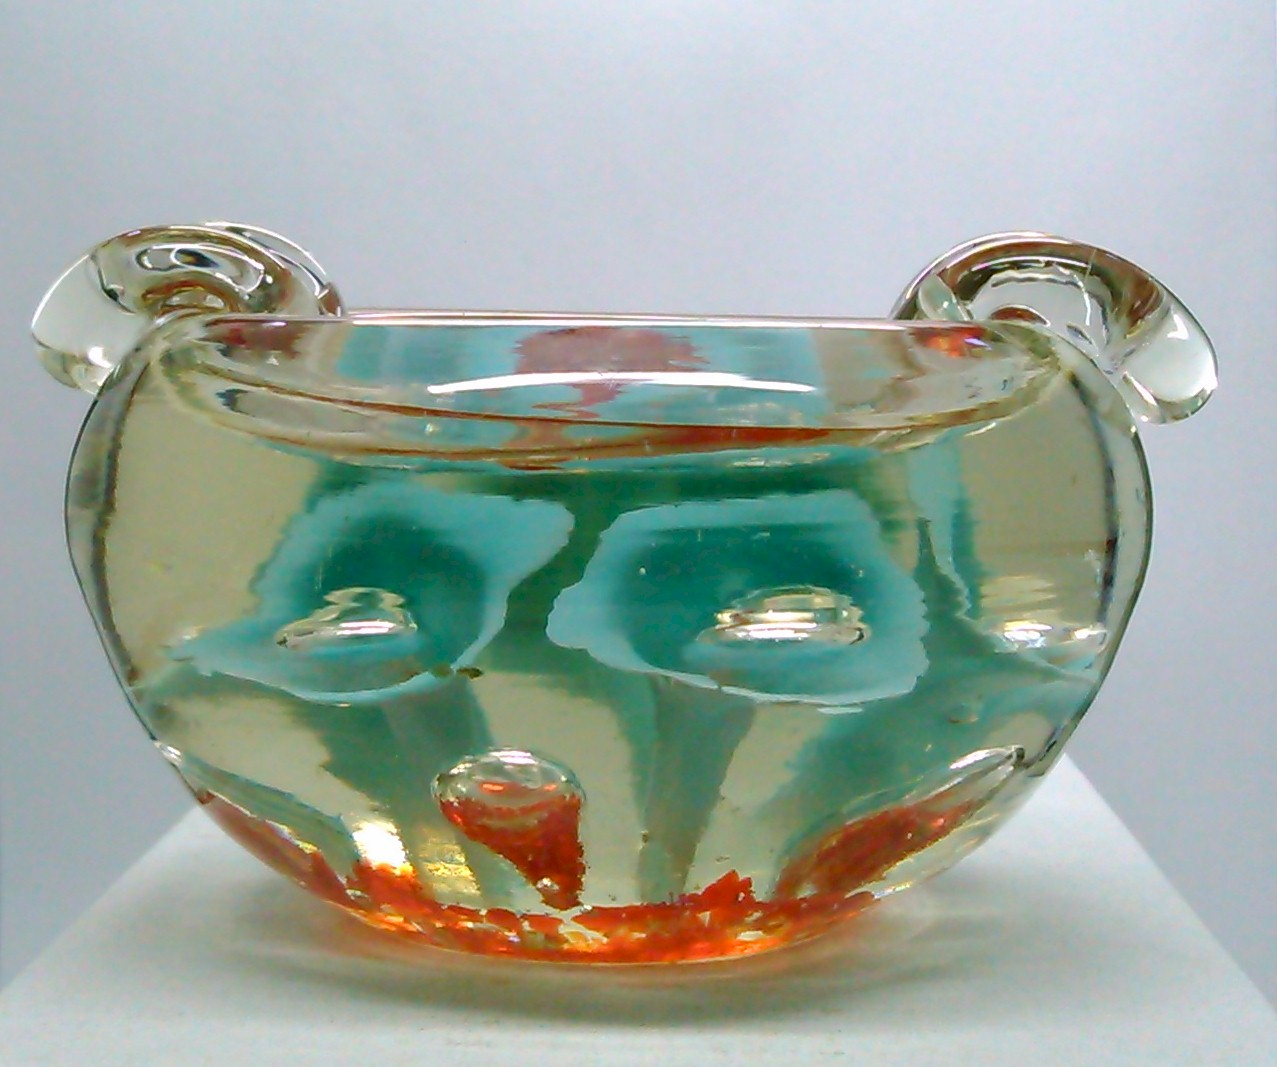 SOLD - Vintage St  Clair gibson prestige hand blown Art Glass Ashtray  Paperweight